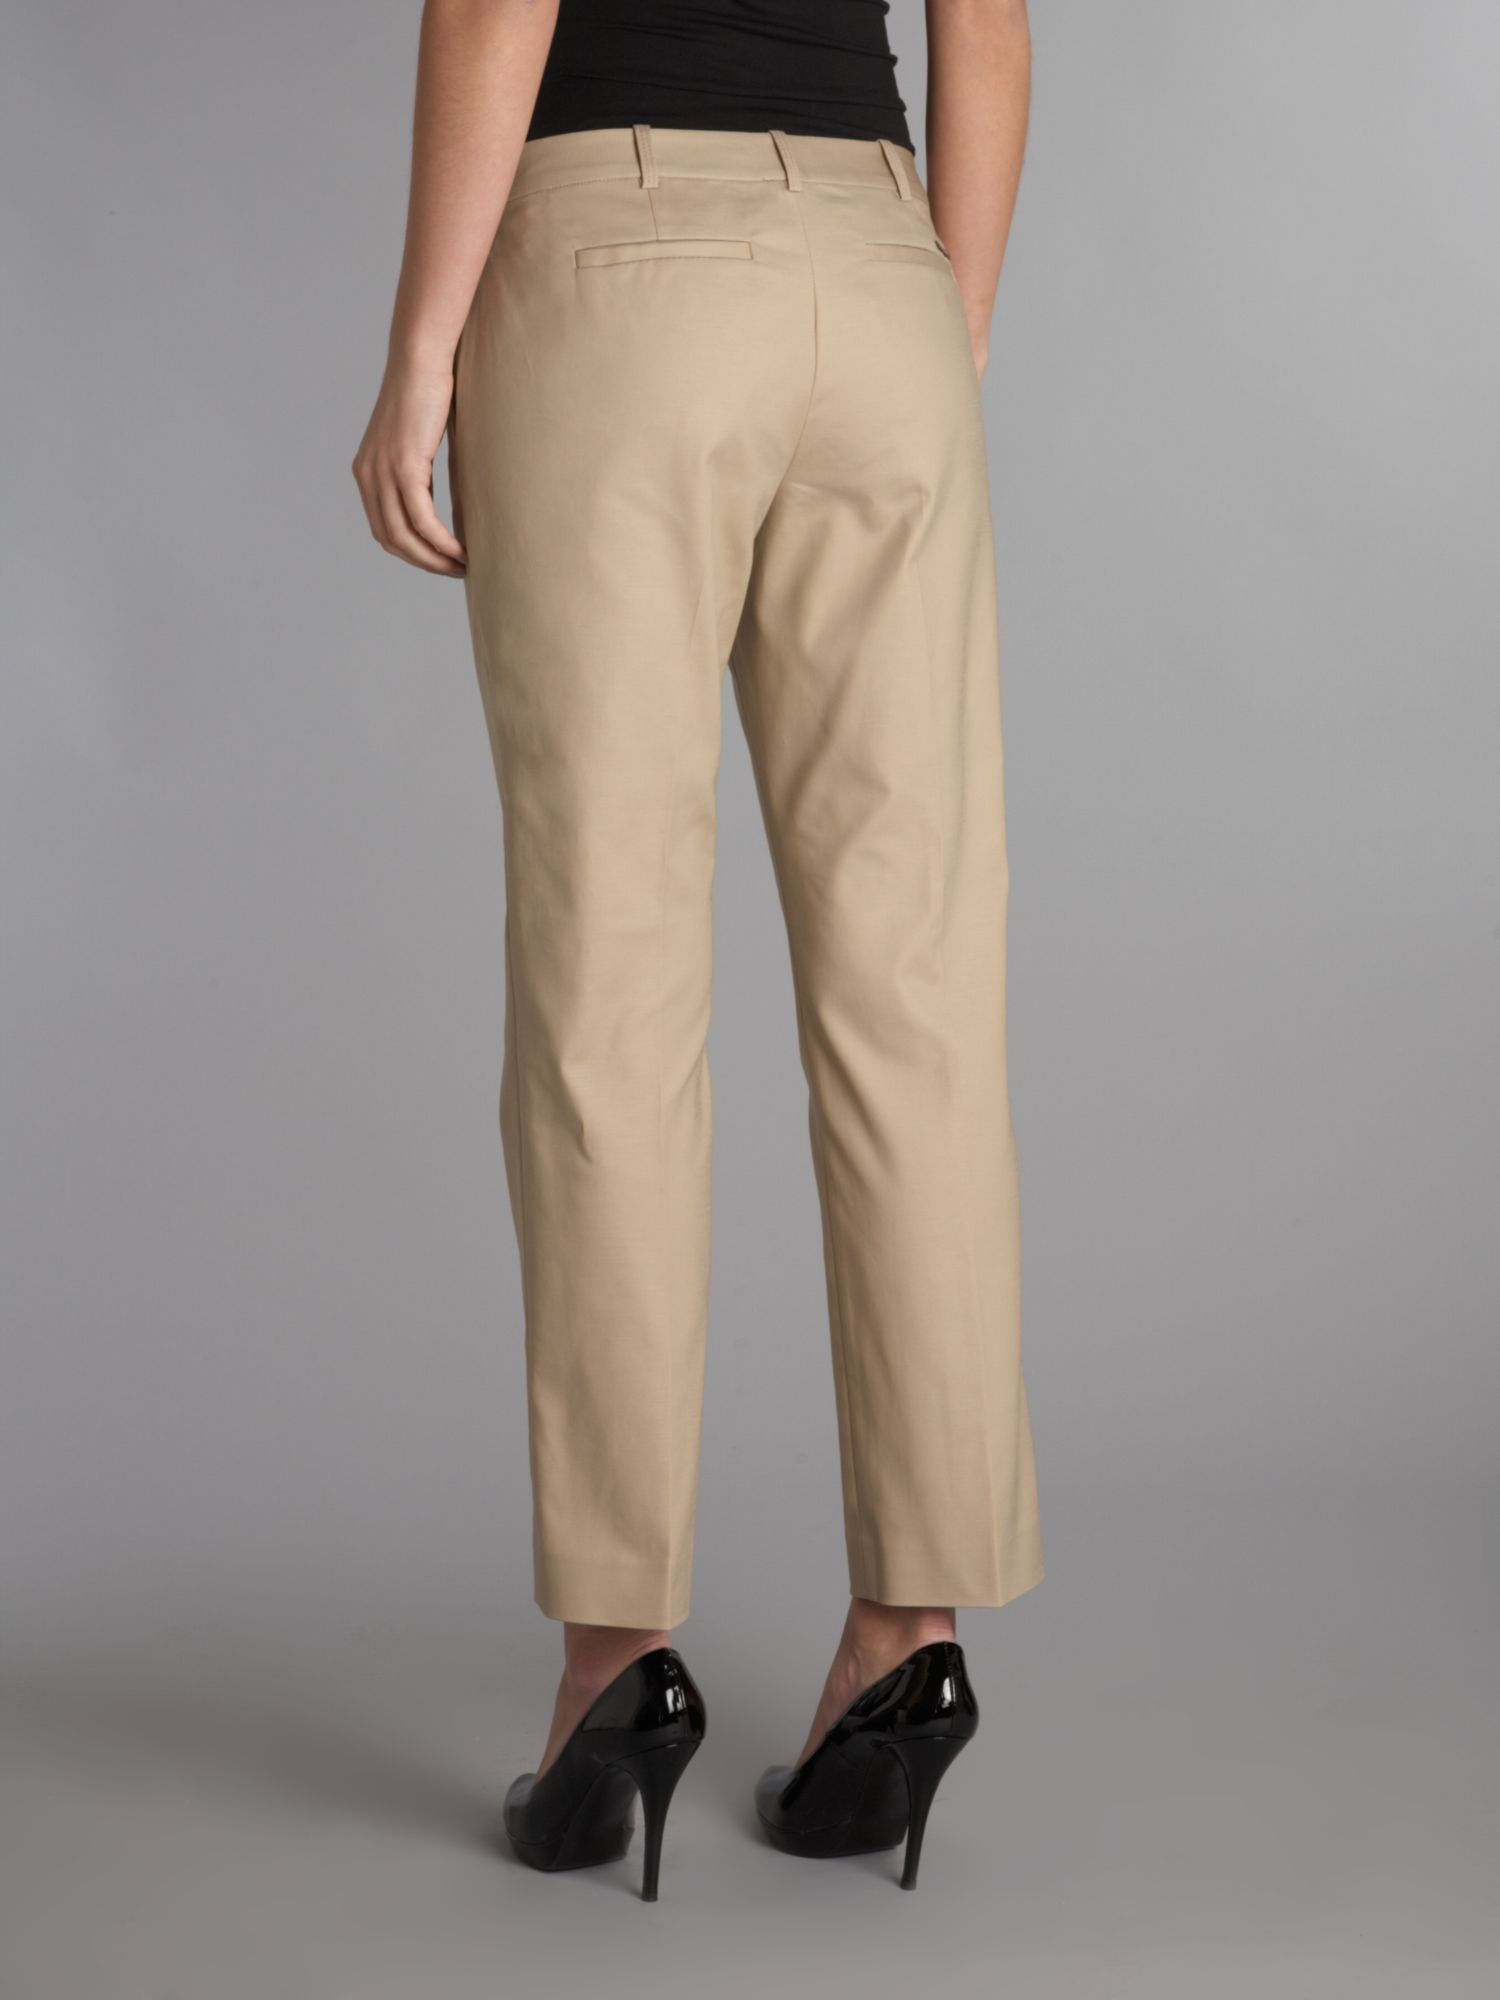 Ankly pant trousers